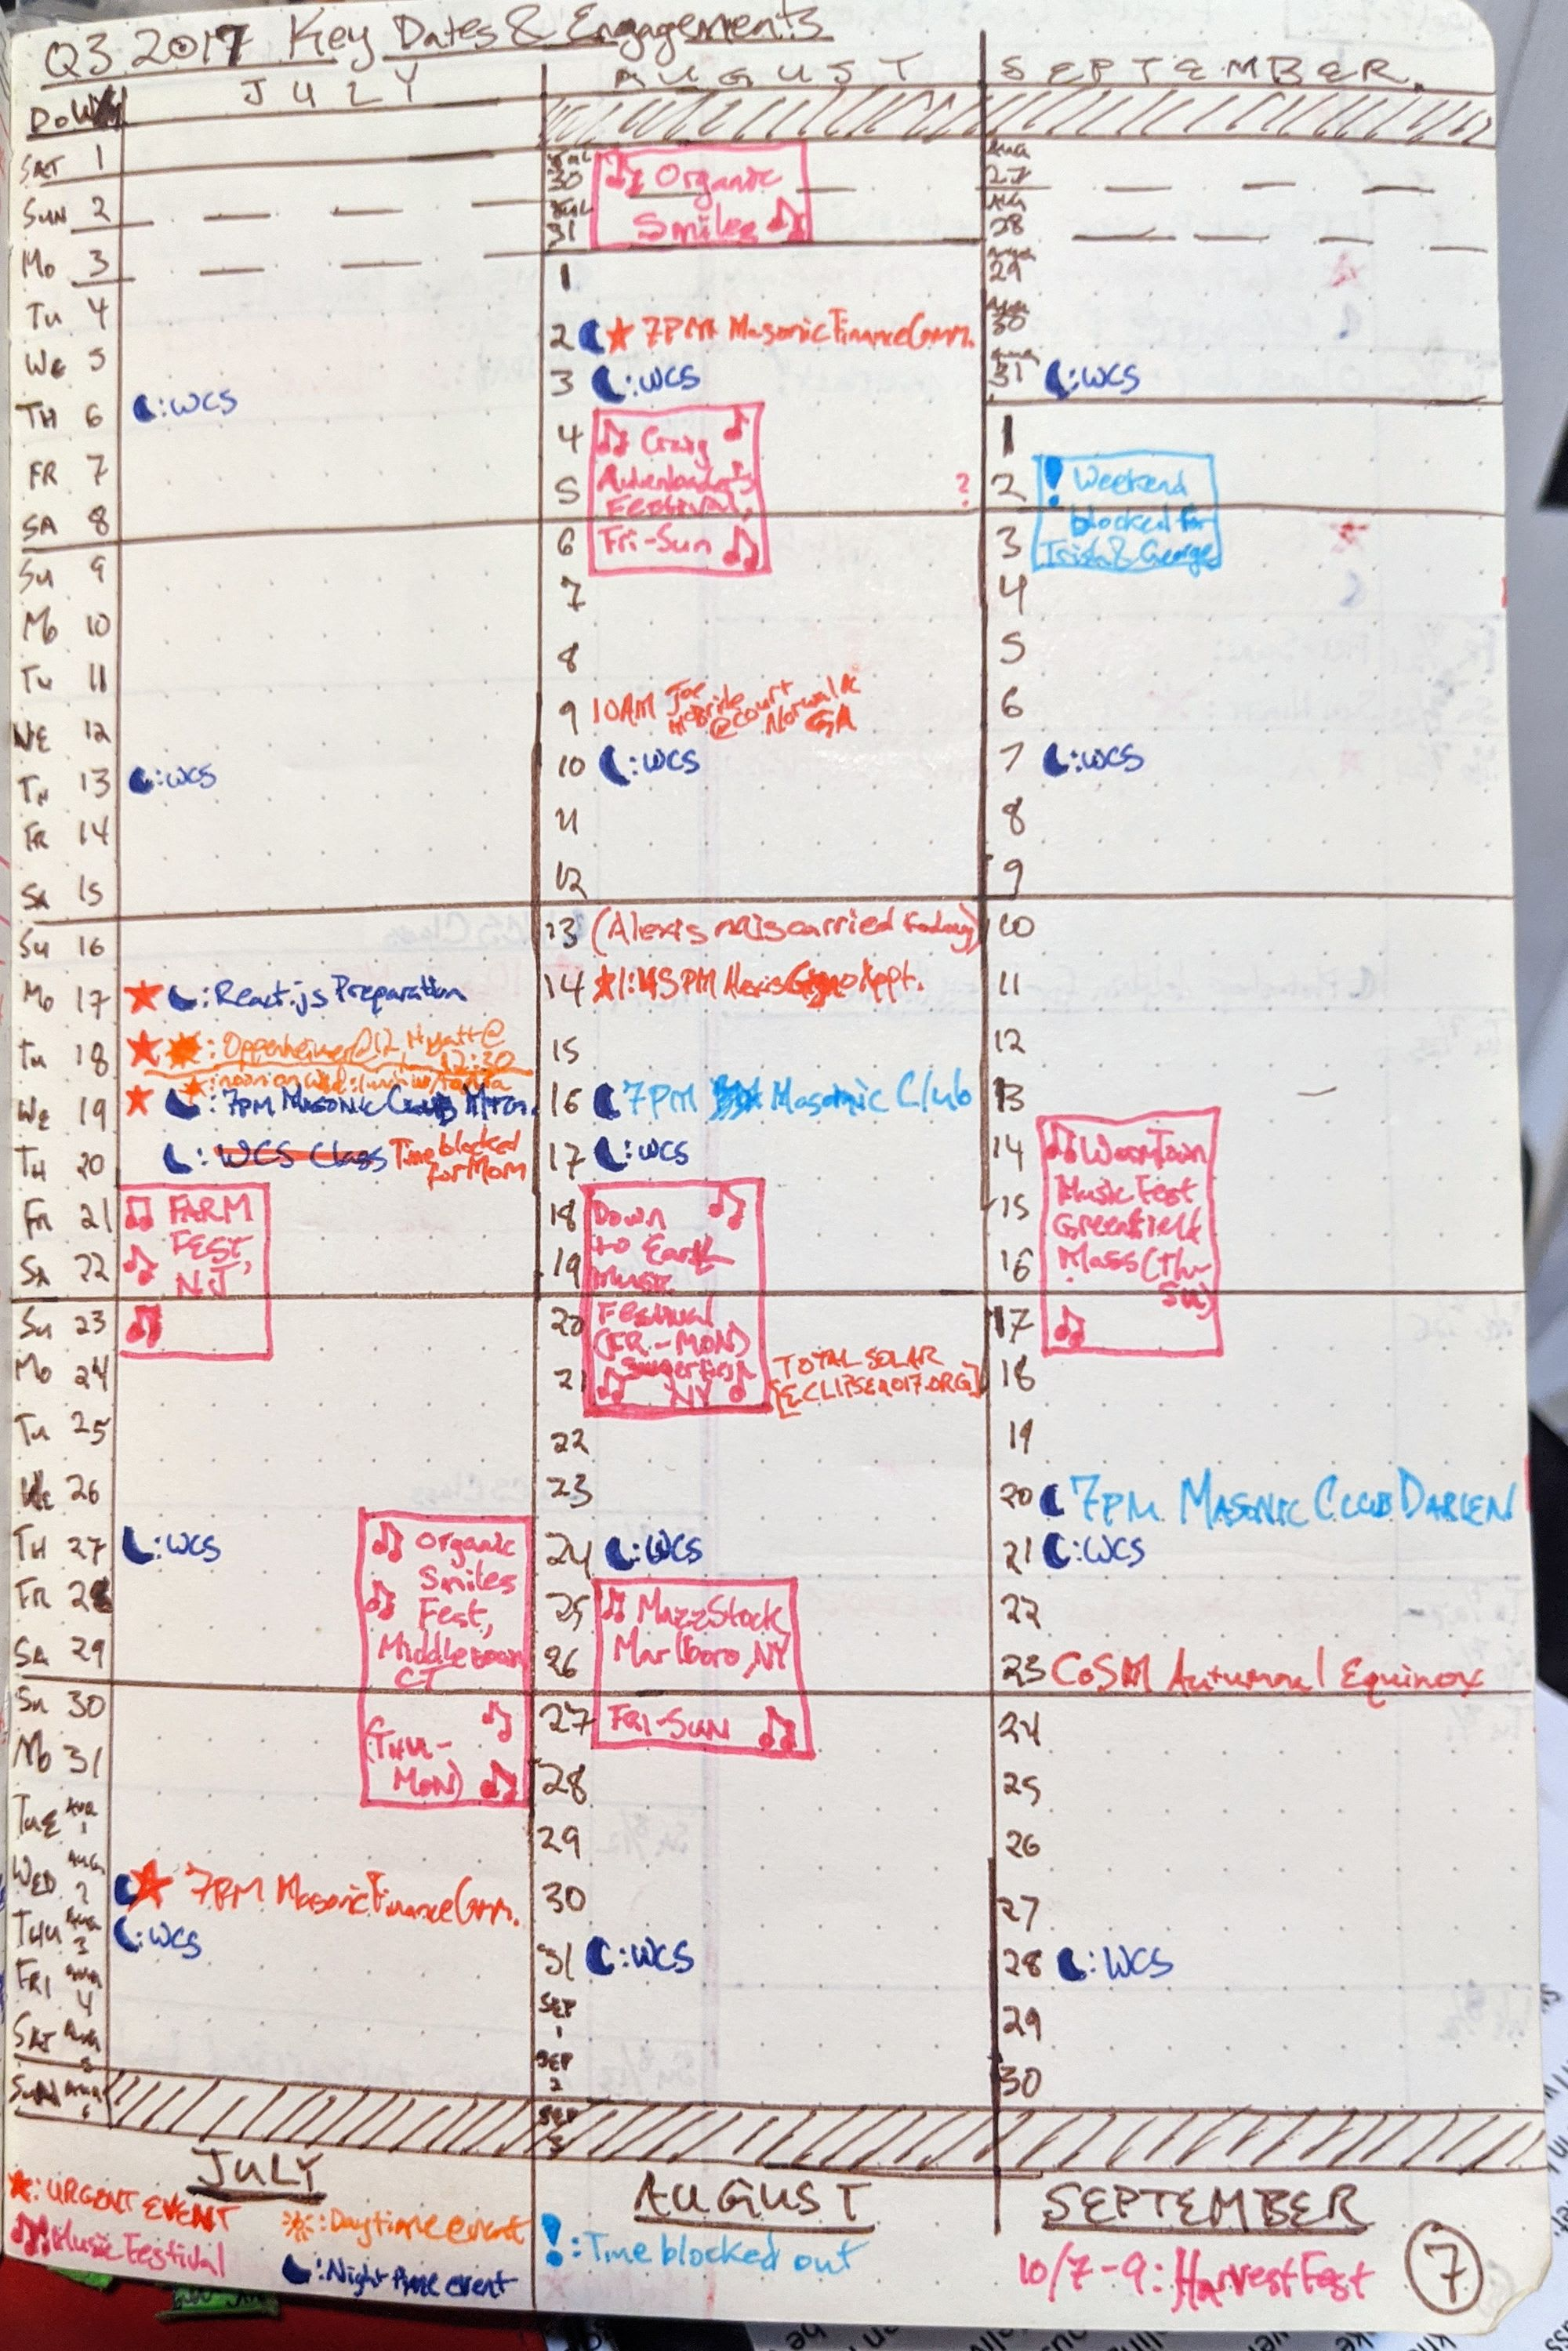 A calendar I drew out to track my important events in the third quarter of 2017.